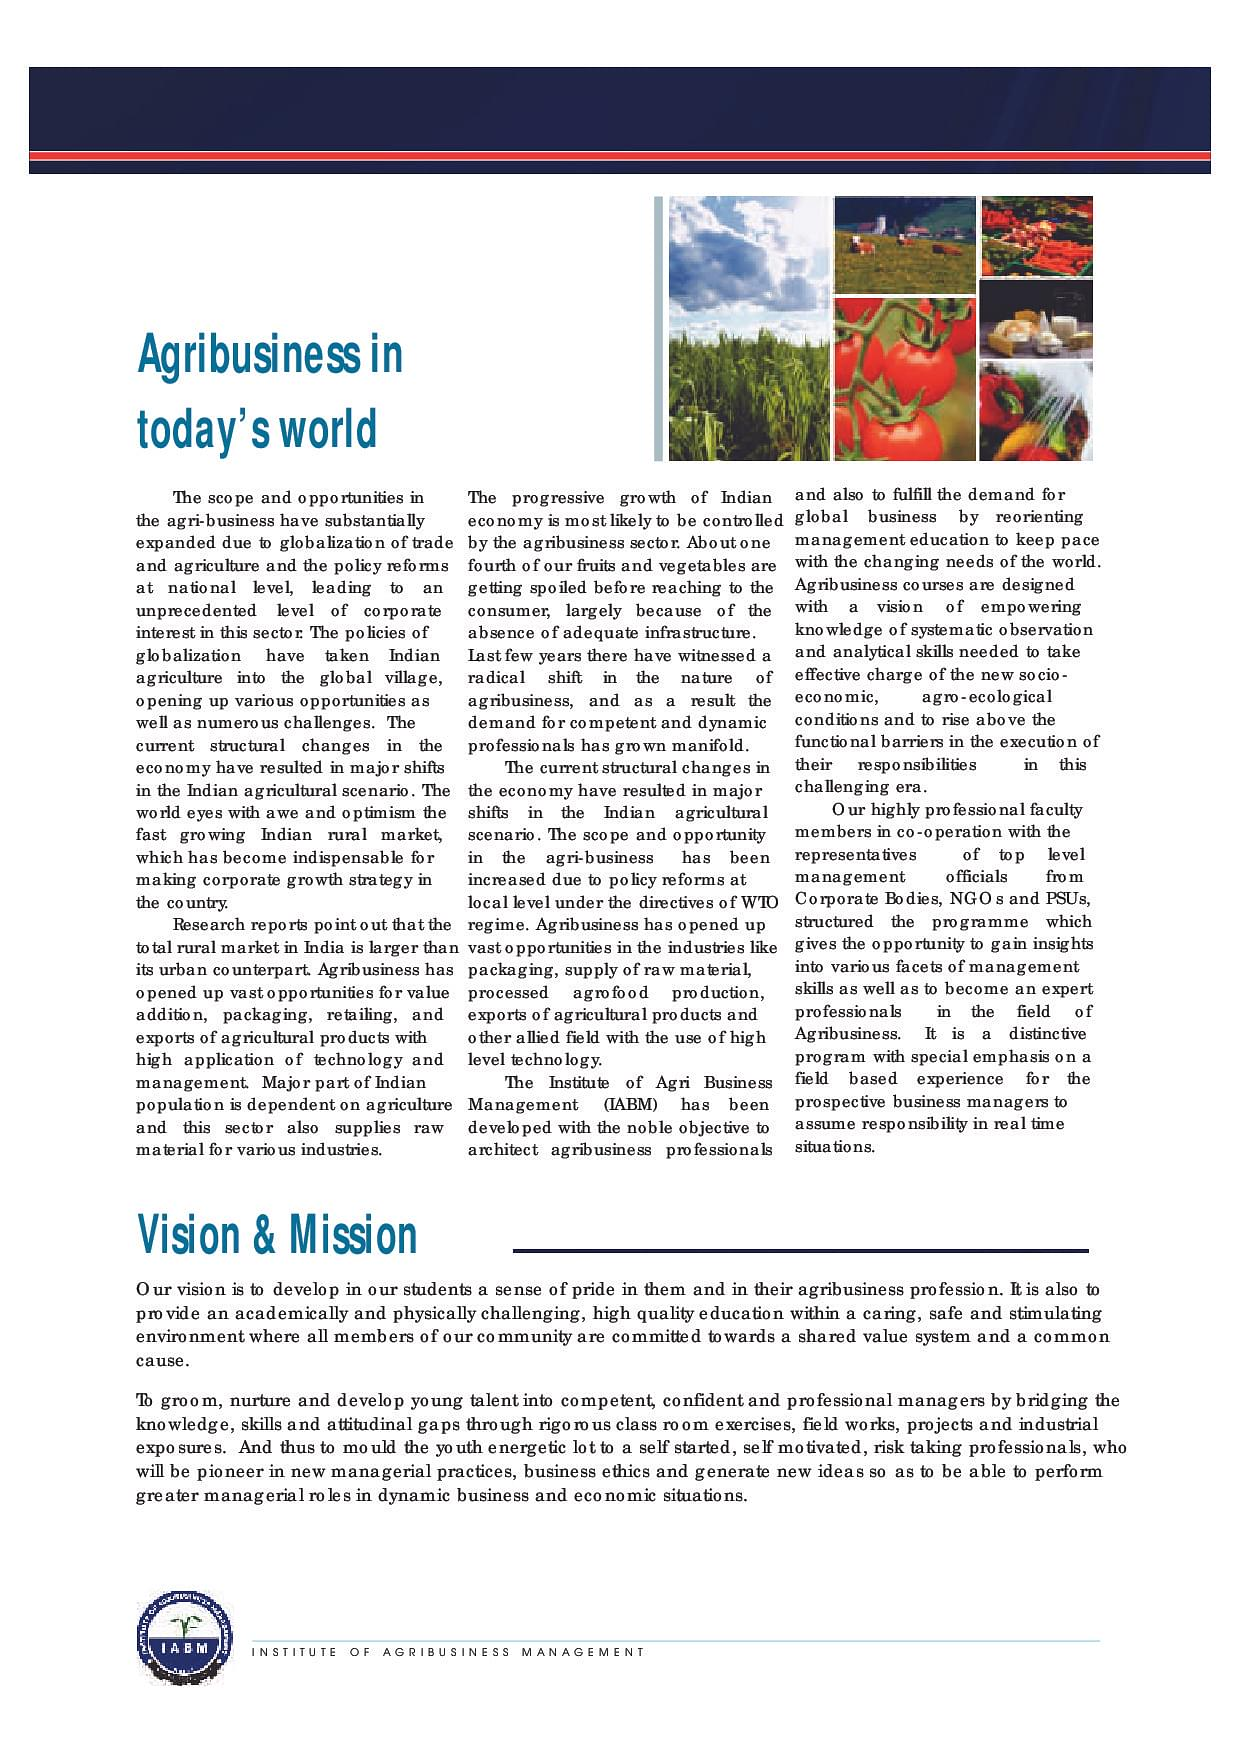 agribusiness management The agribusiness management major is designed for students who are interested in careers with agricultural input supply, agricultural production, commodity assembly and processing, and agricultural marketing organizations.